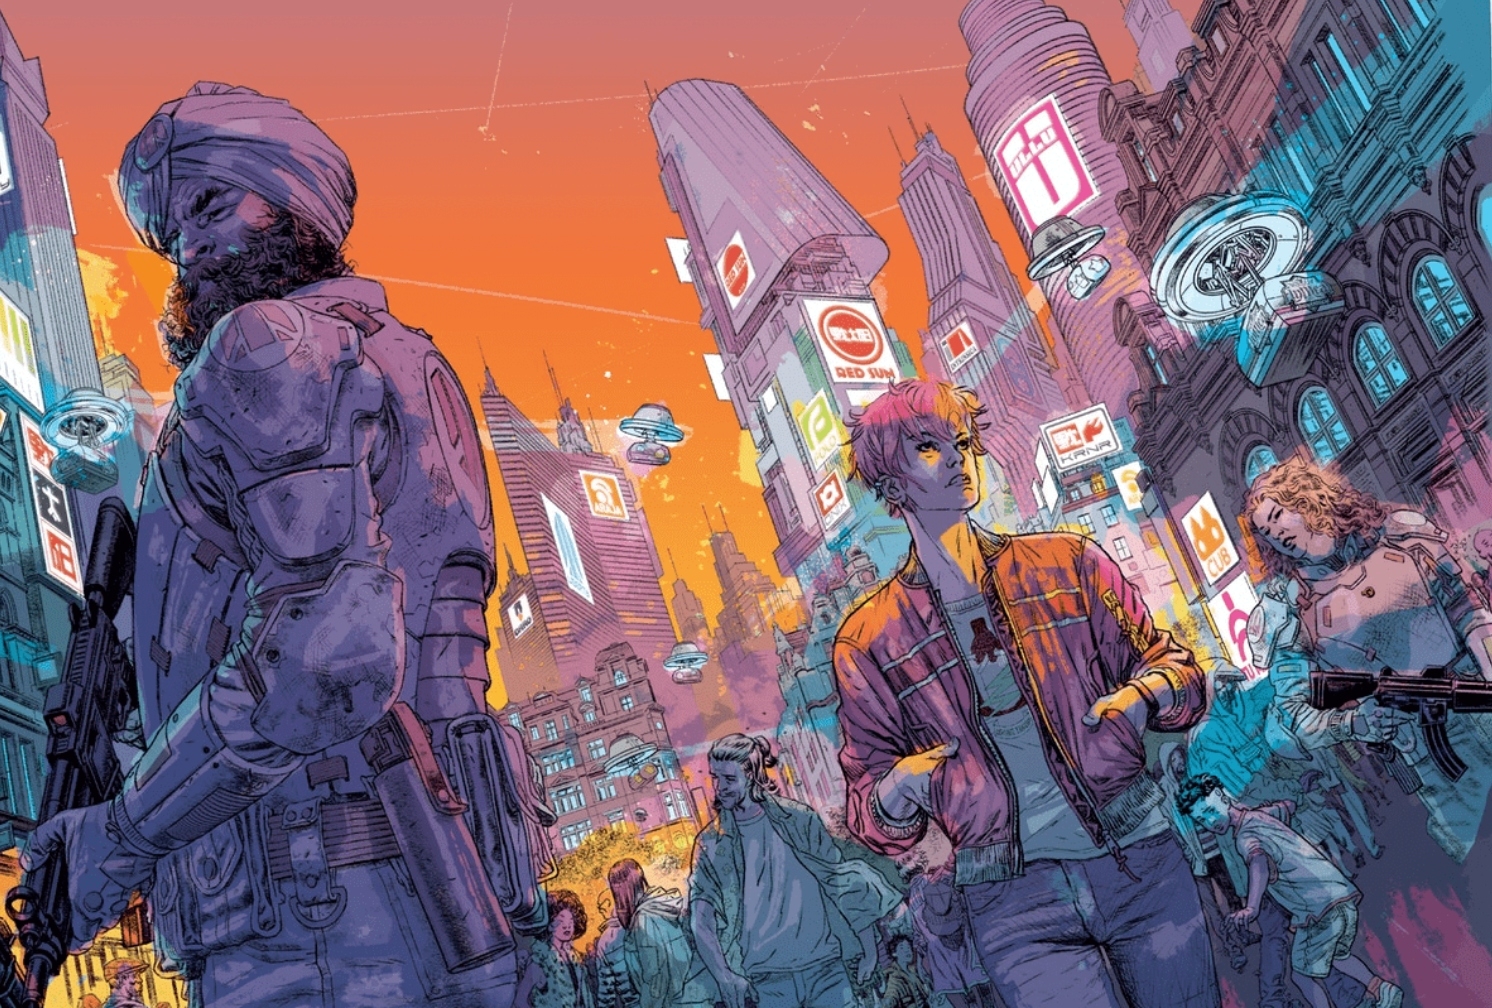 Alex de Campi and Duncan Jones talk 'Madi', action in storytelling, and humanity's future